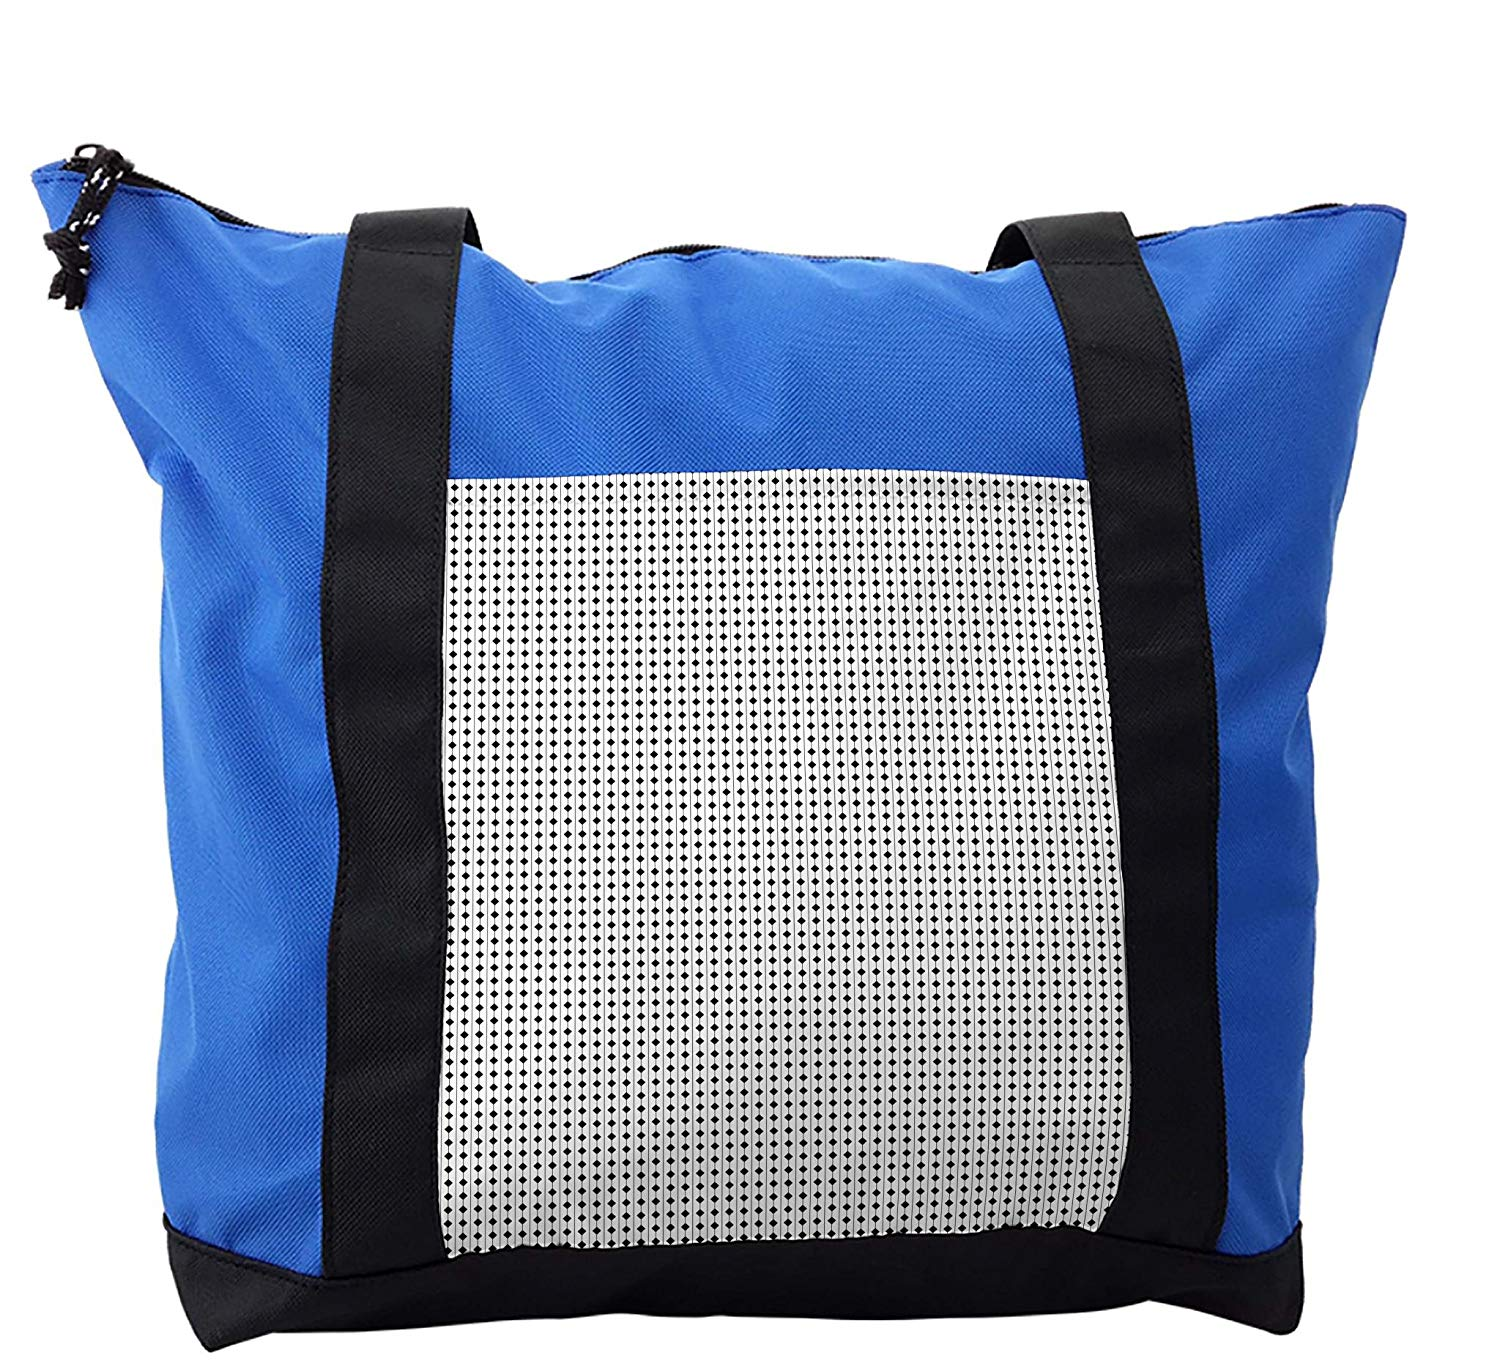 Lunarable Checkered Shoulder Bag, Vertical Lines Squares, Durable with Zipper